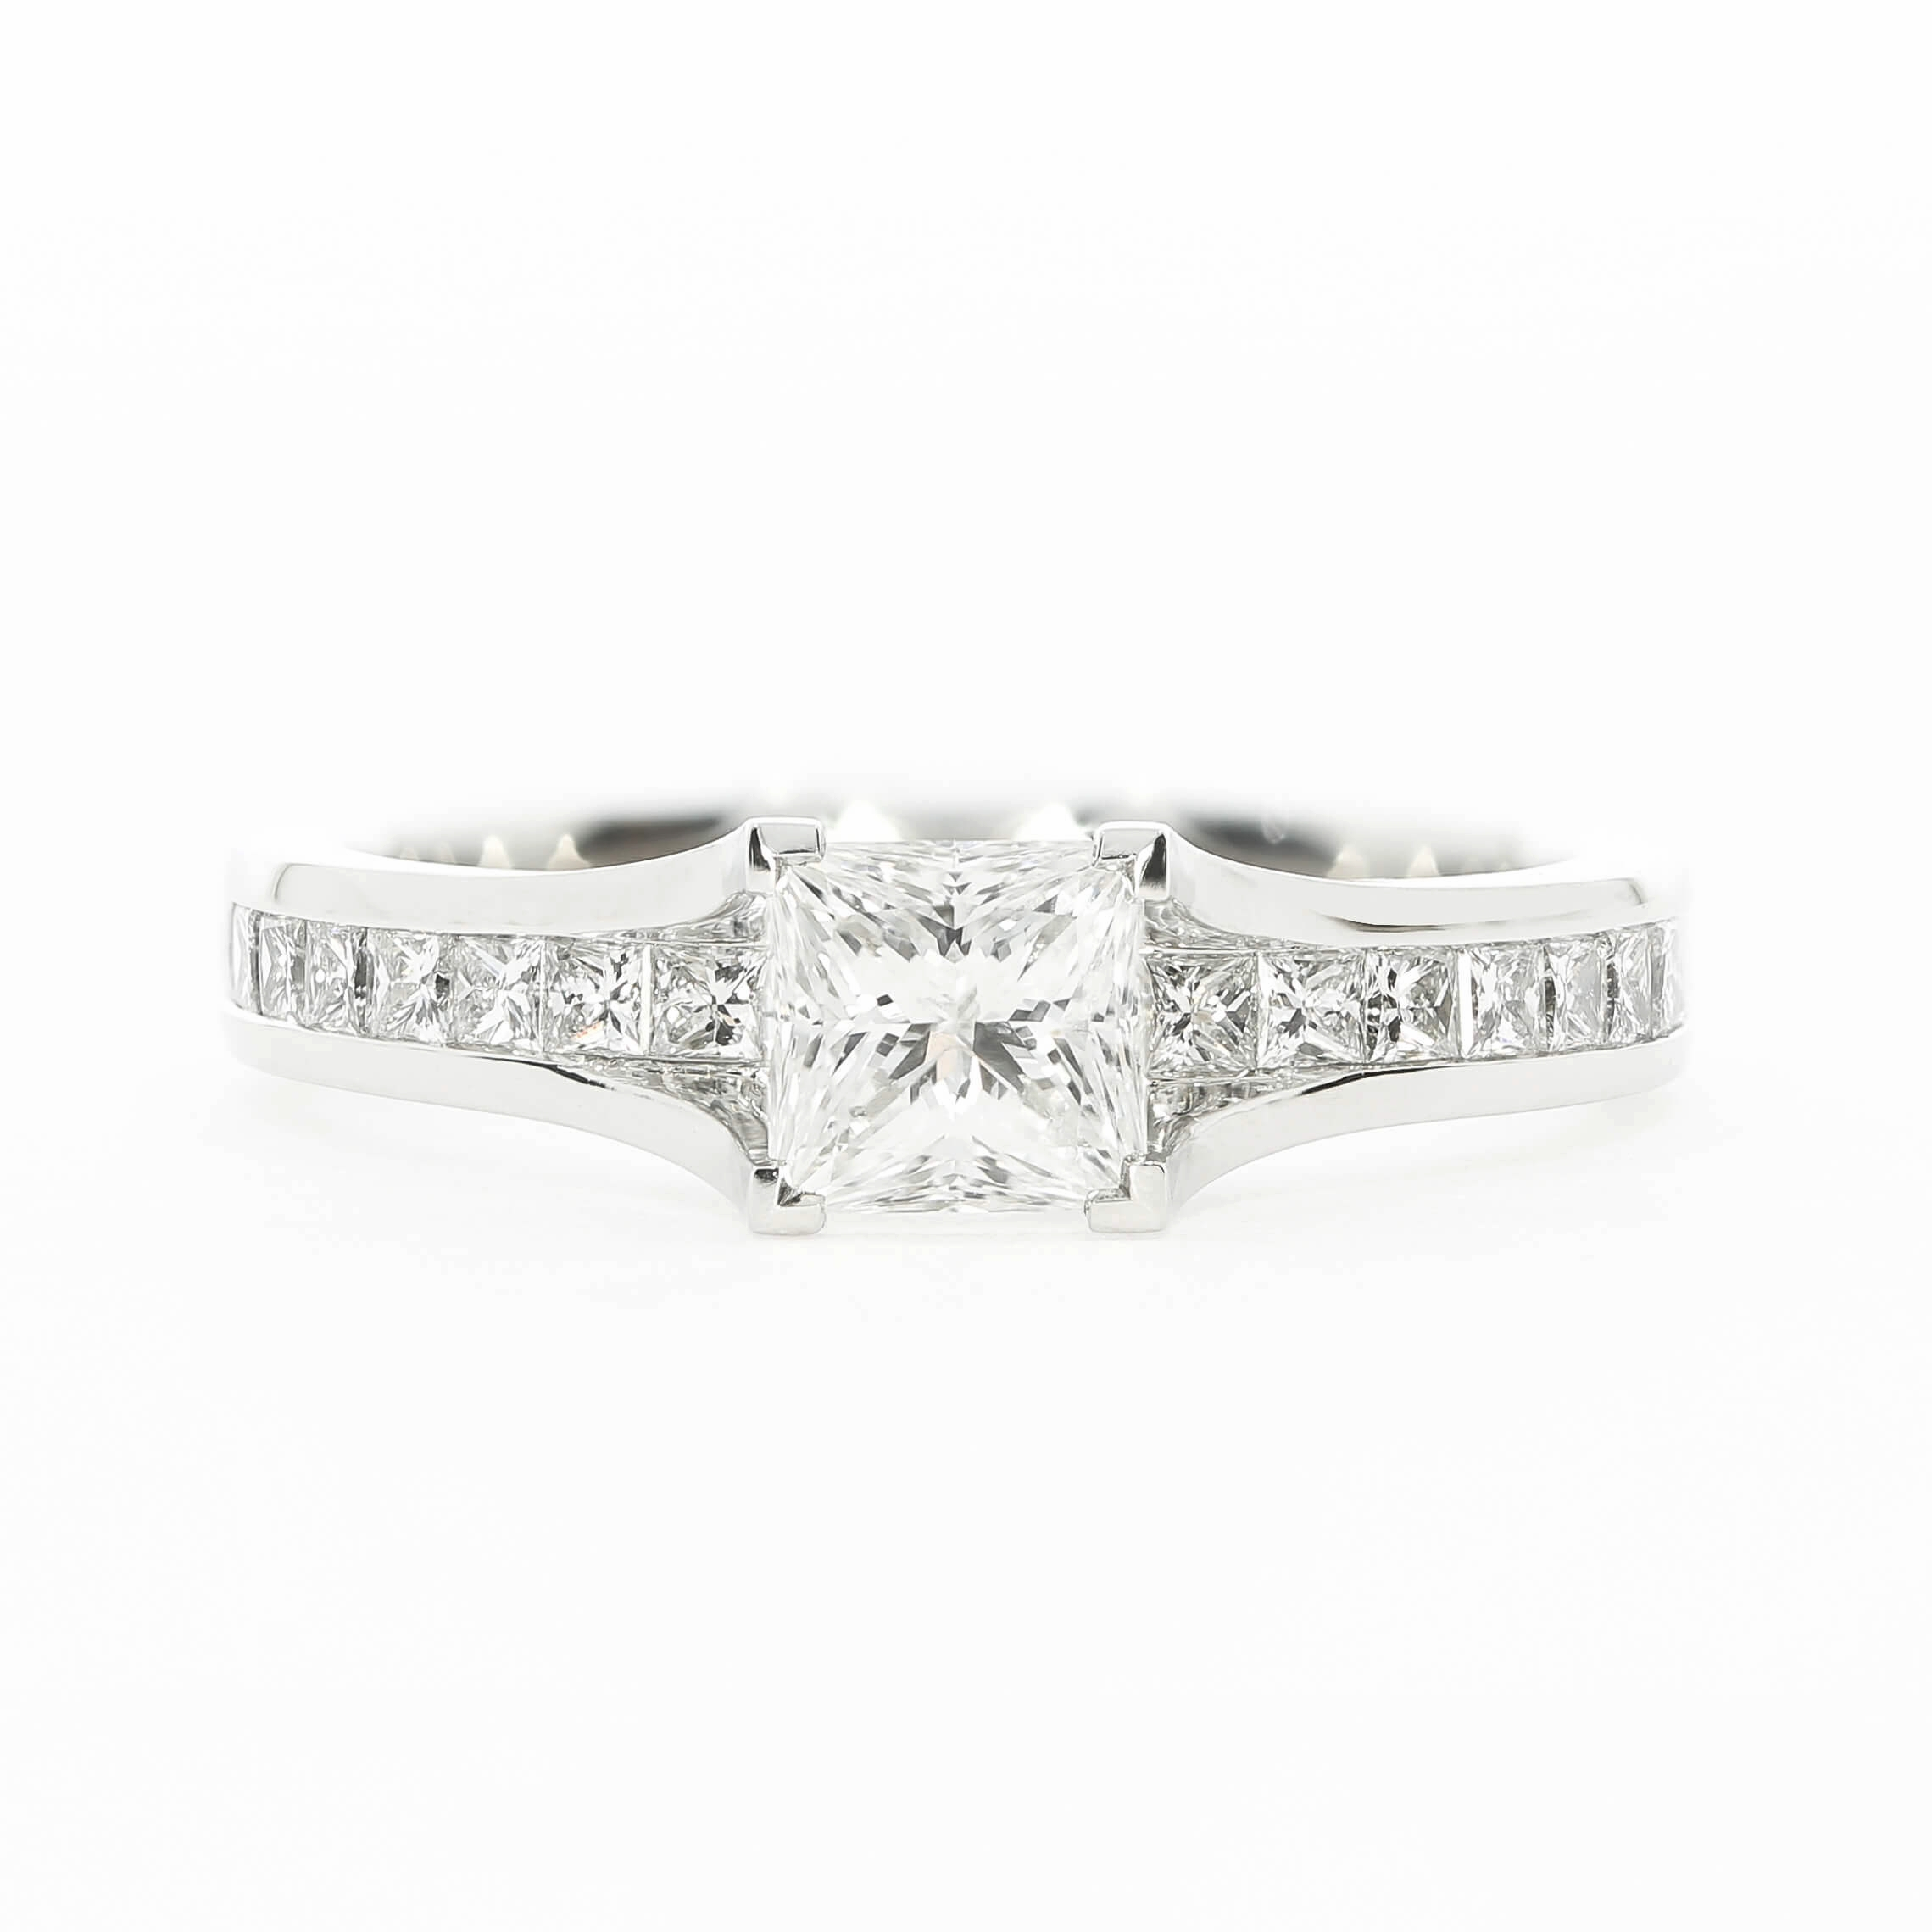 This bespoke engagement ring uses a princess cut channel set diamond band with a princess cut centre diamond